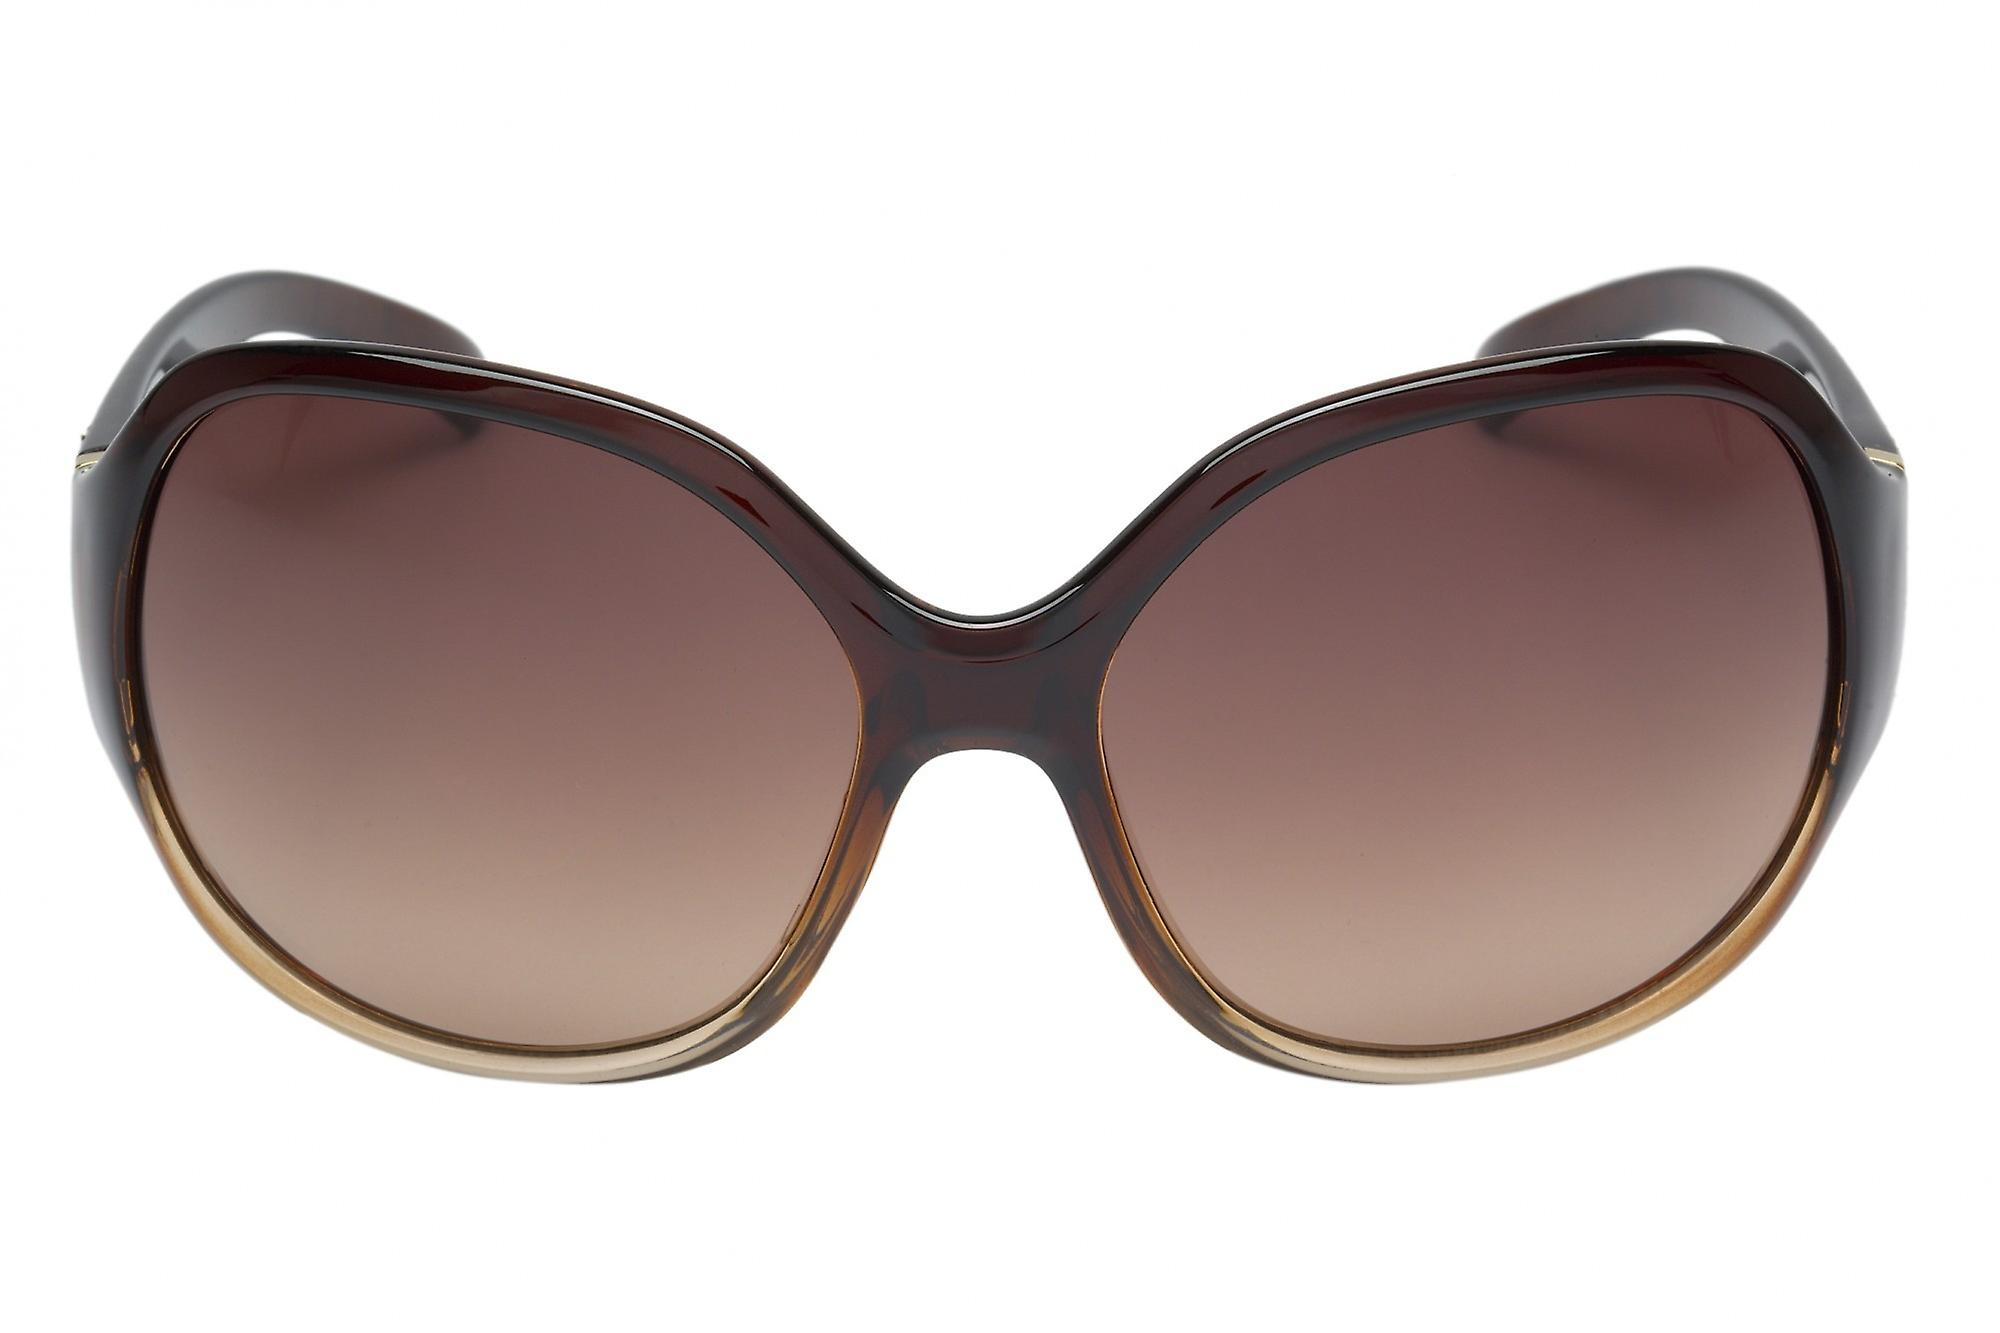 Elegant sunglasses for women by Burgmeister with 100% UV protection | solid polycarbonate frame, high quality sunglasses case, microfiber glasses pouch and 2 years warranty | SBM105-242 Paris